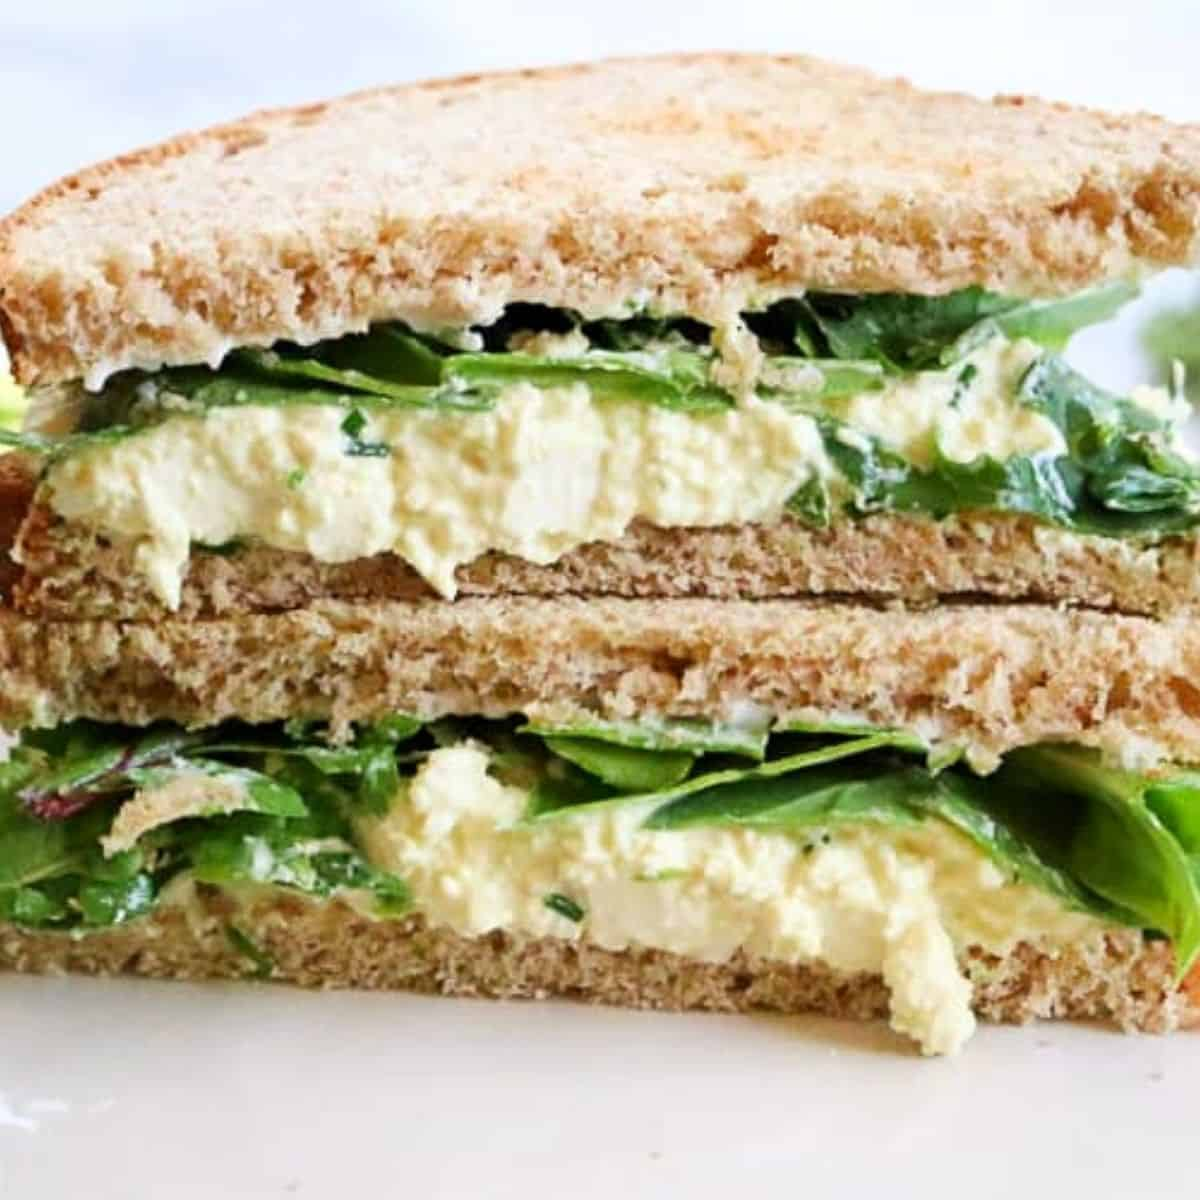 close up image of a vegan egg salad sandwich made with mashed tofu, cut in triangles and stacked on top of each other